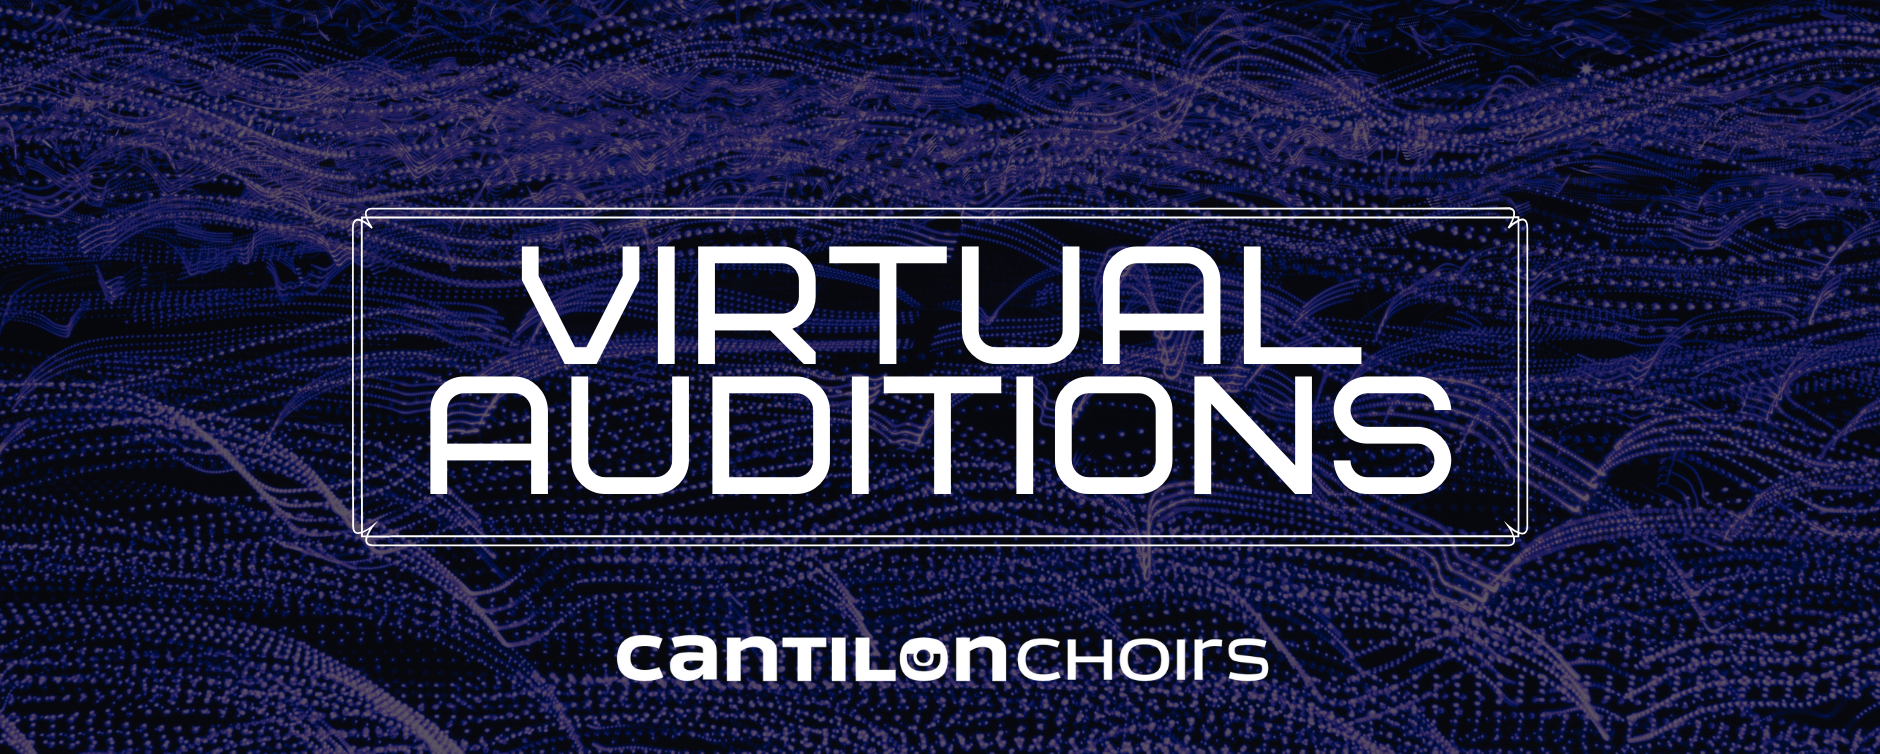 Register for a virtual audition